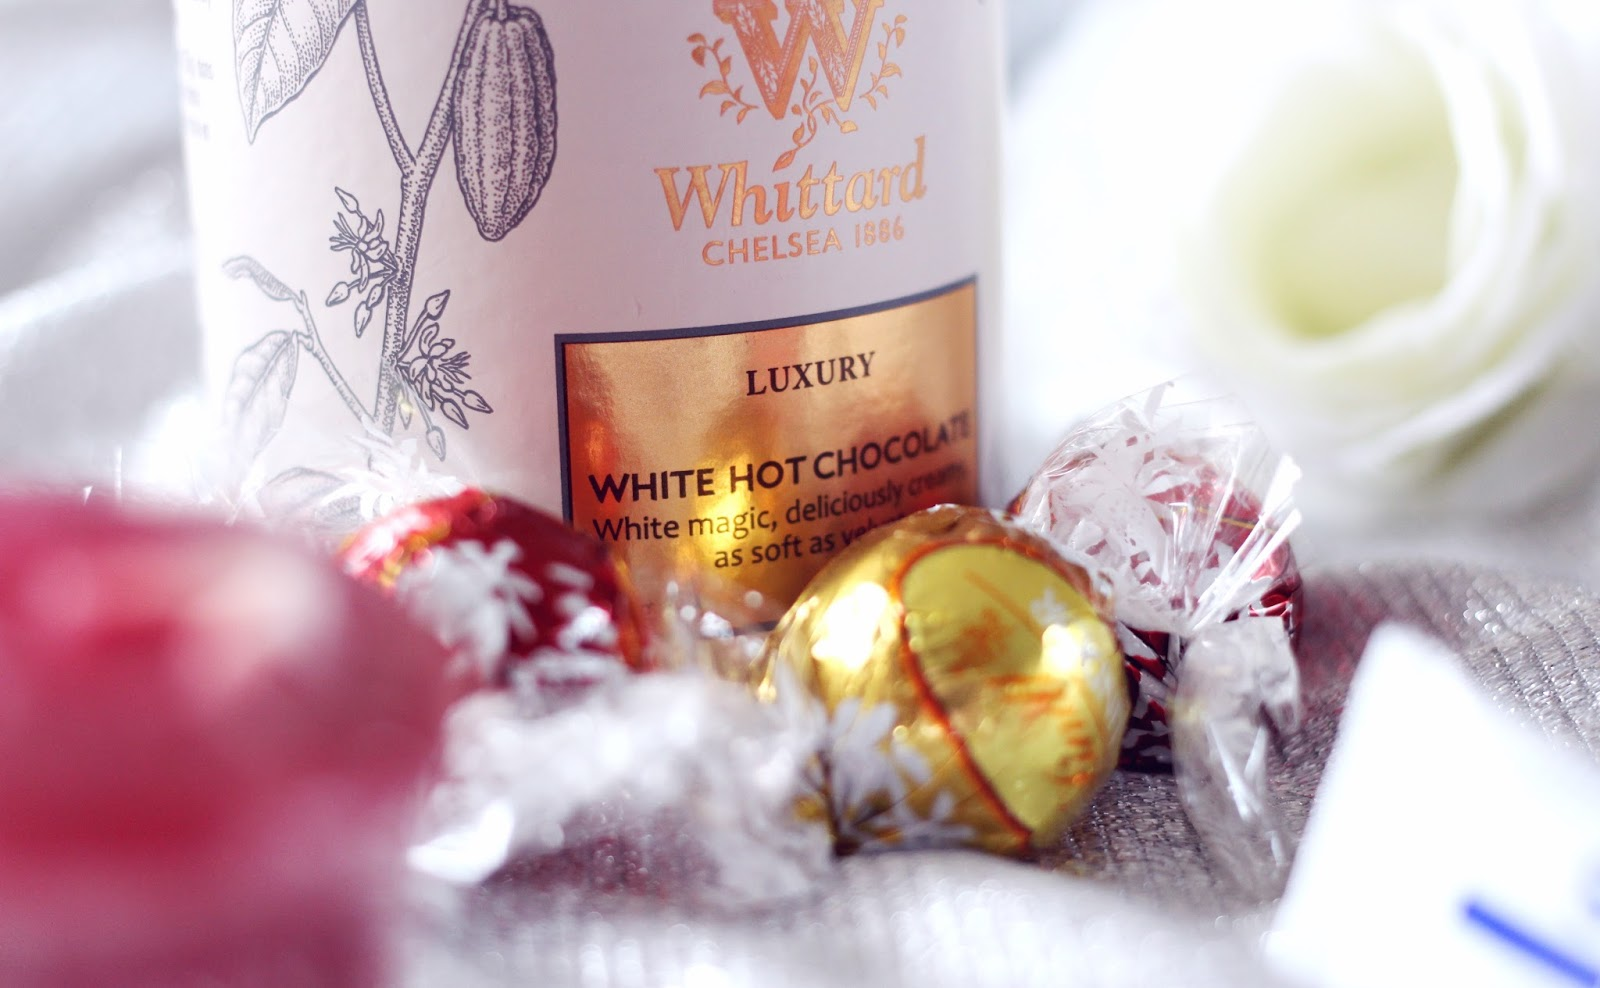 Whittard White Hot Chocolate